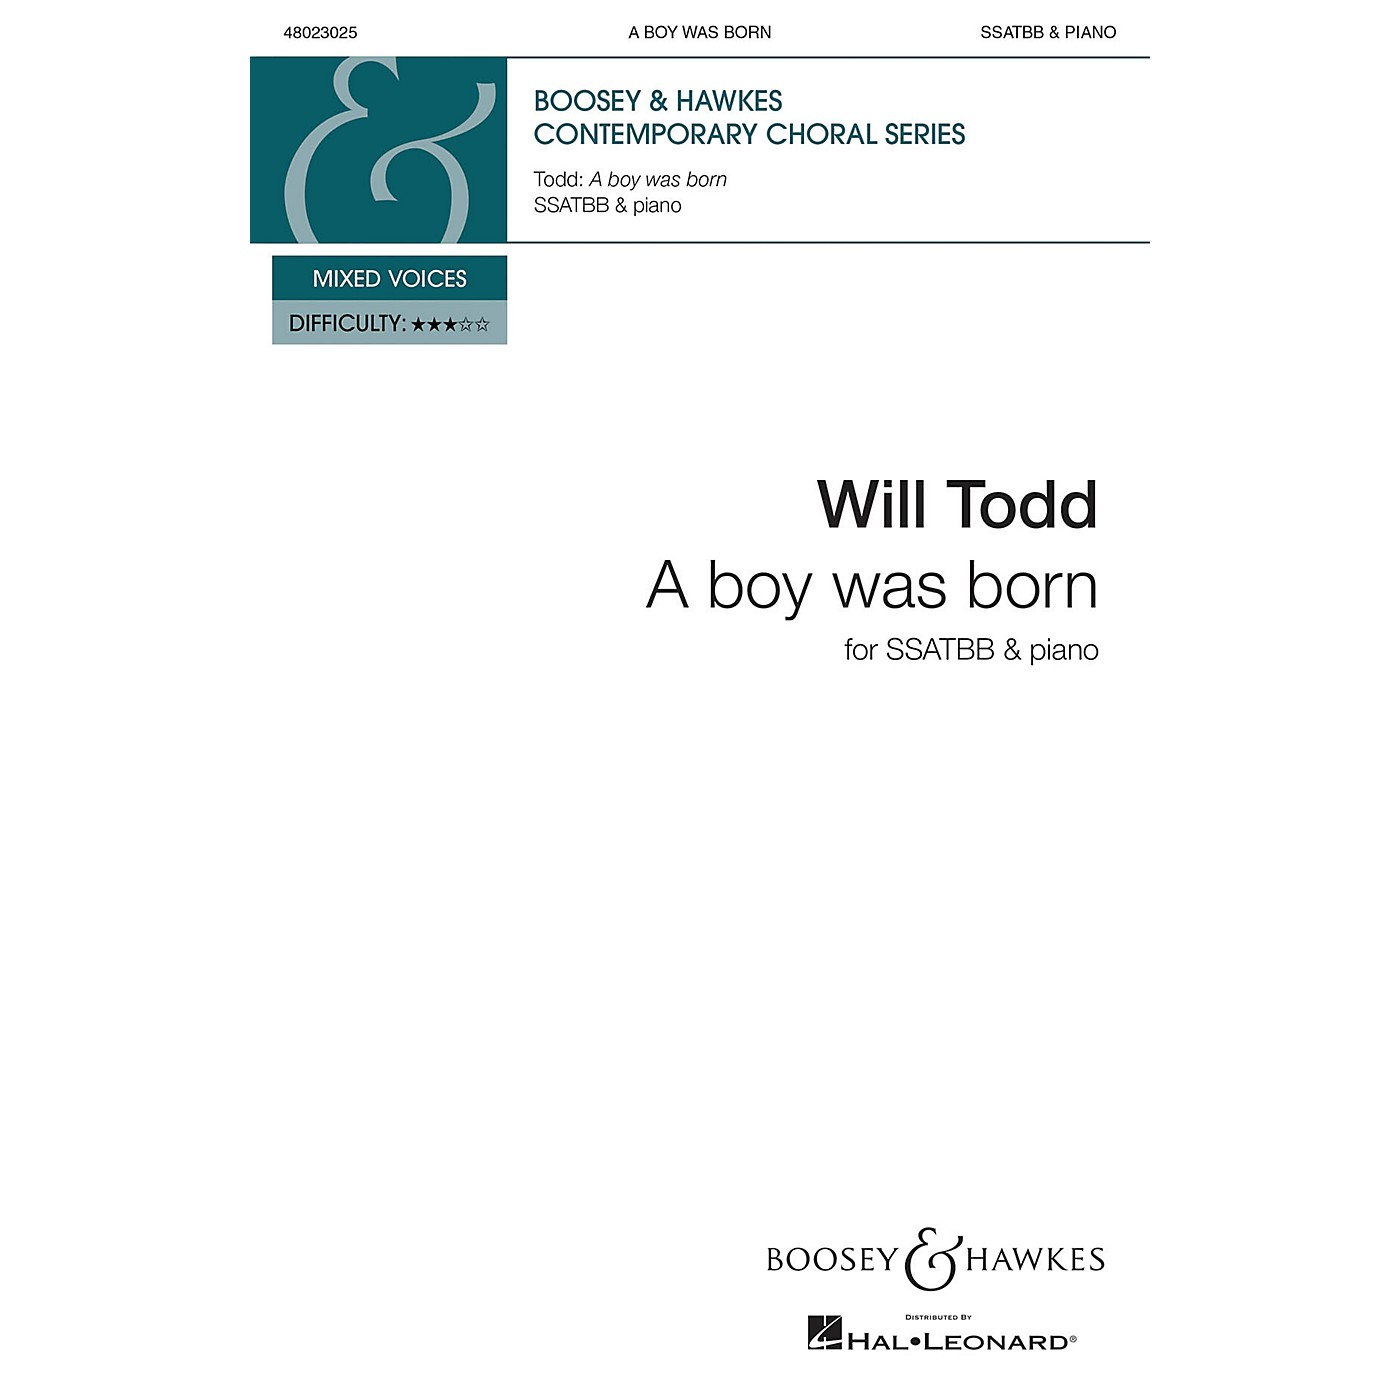 Boosey and Hawkes A Boy Was Born (Boosey & Hawkes Contemporary Choral Series) SSATBB WITH PIANO composed by Will Todd thumbnail